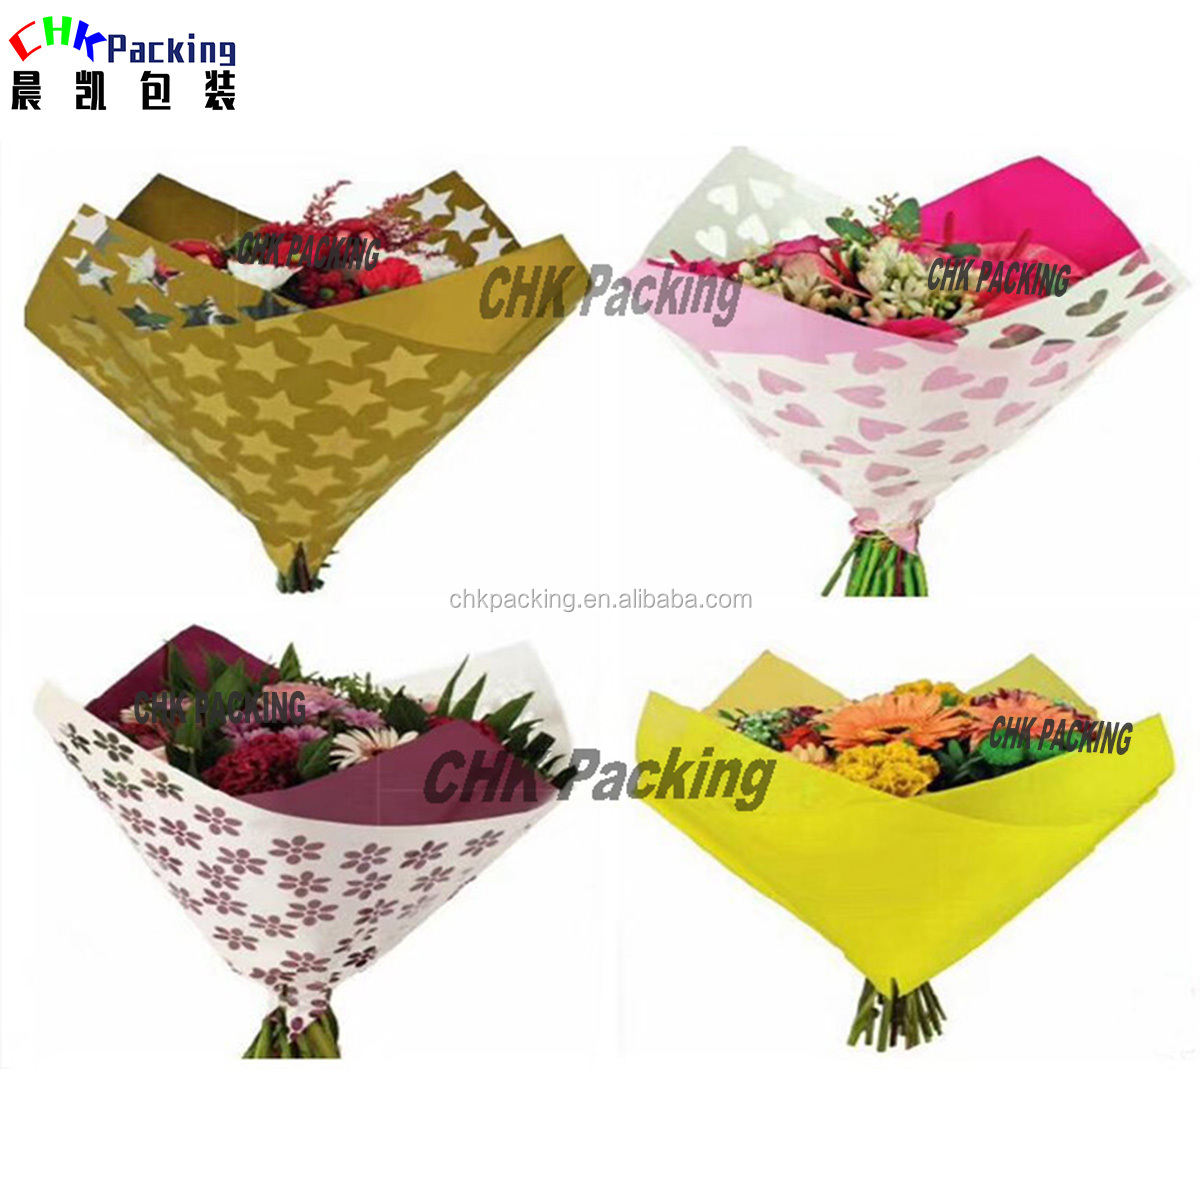 colorful custom flower wrapping  package film/fresh flower wrapping paper colorful custom flower wrapping  package film/fresh flower wrapping paper